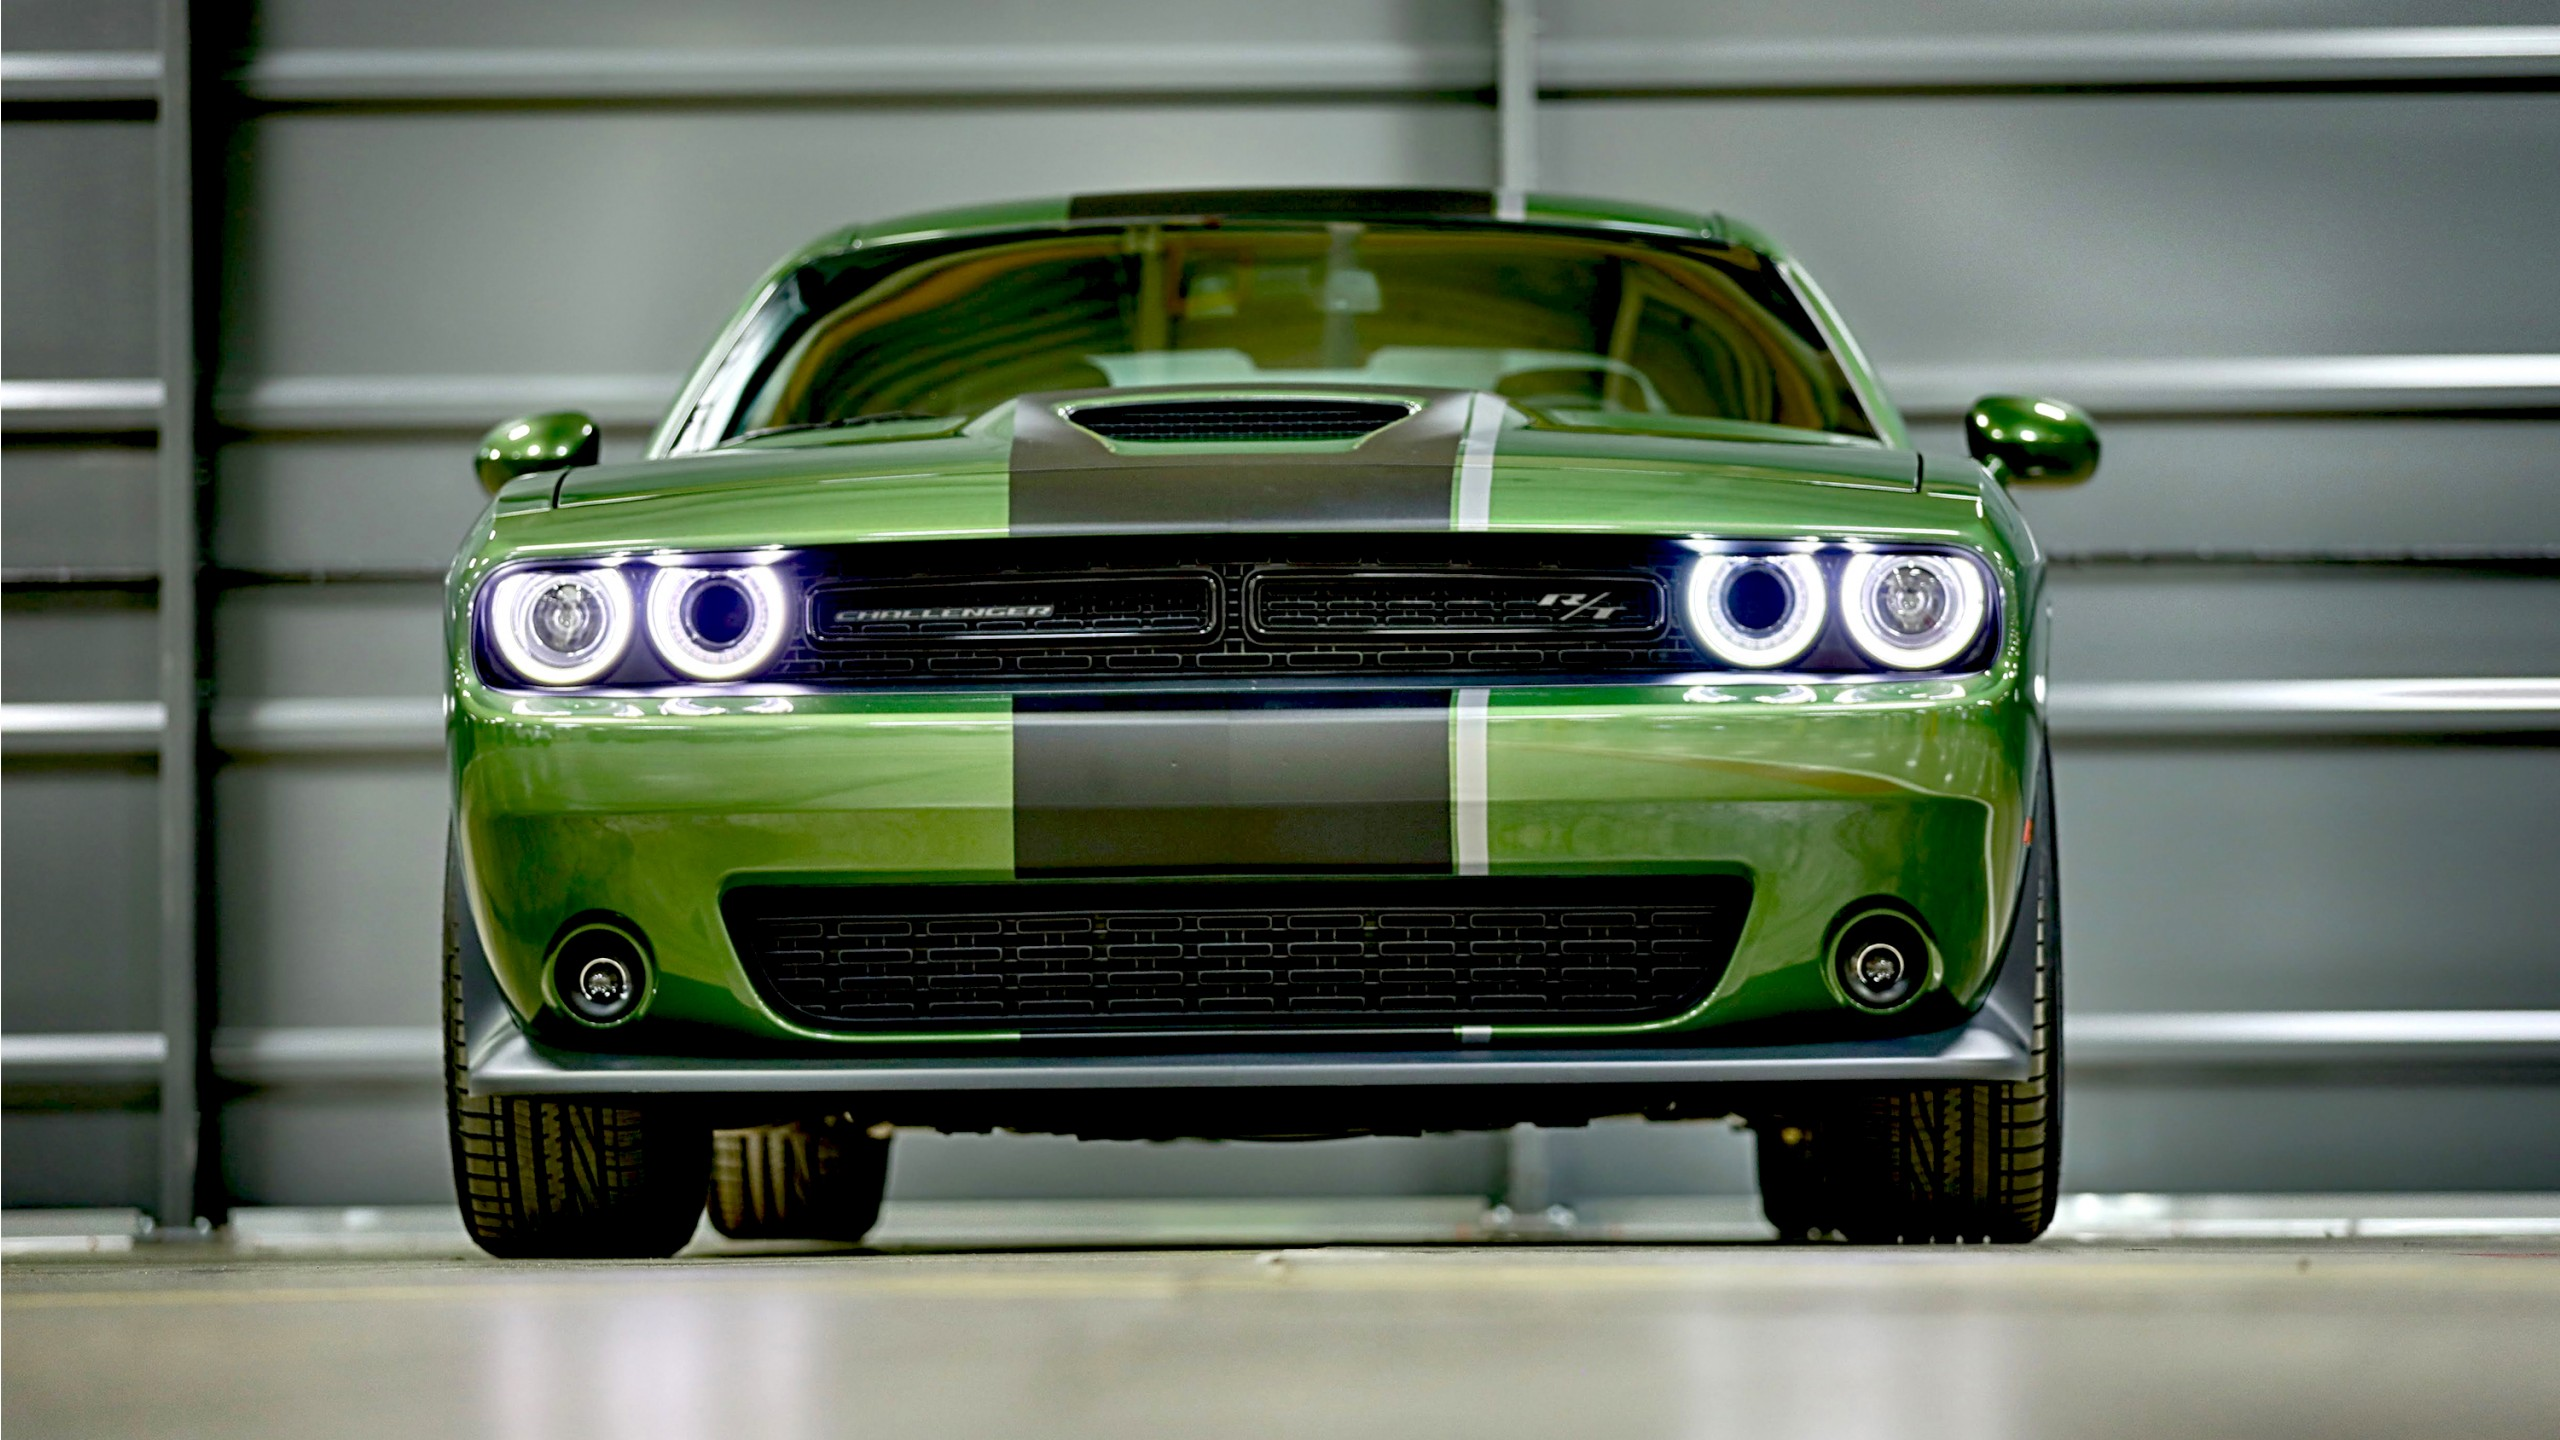 2019 Dodge Challenger RT Stars & Stripes Edition Wallpaper | HD Car Wallpapers | ID #12456